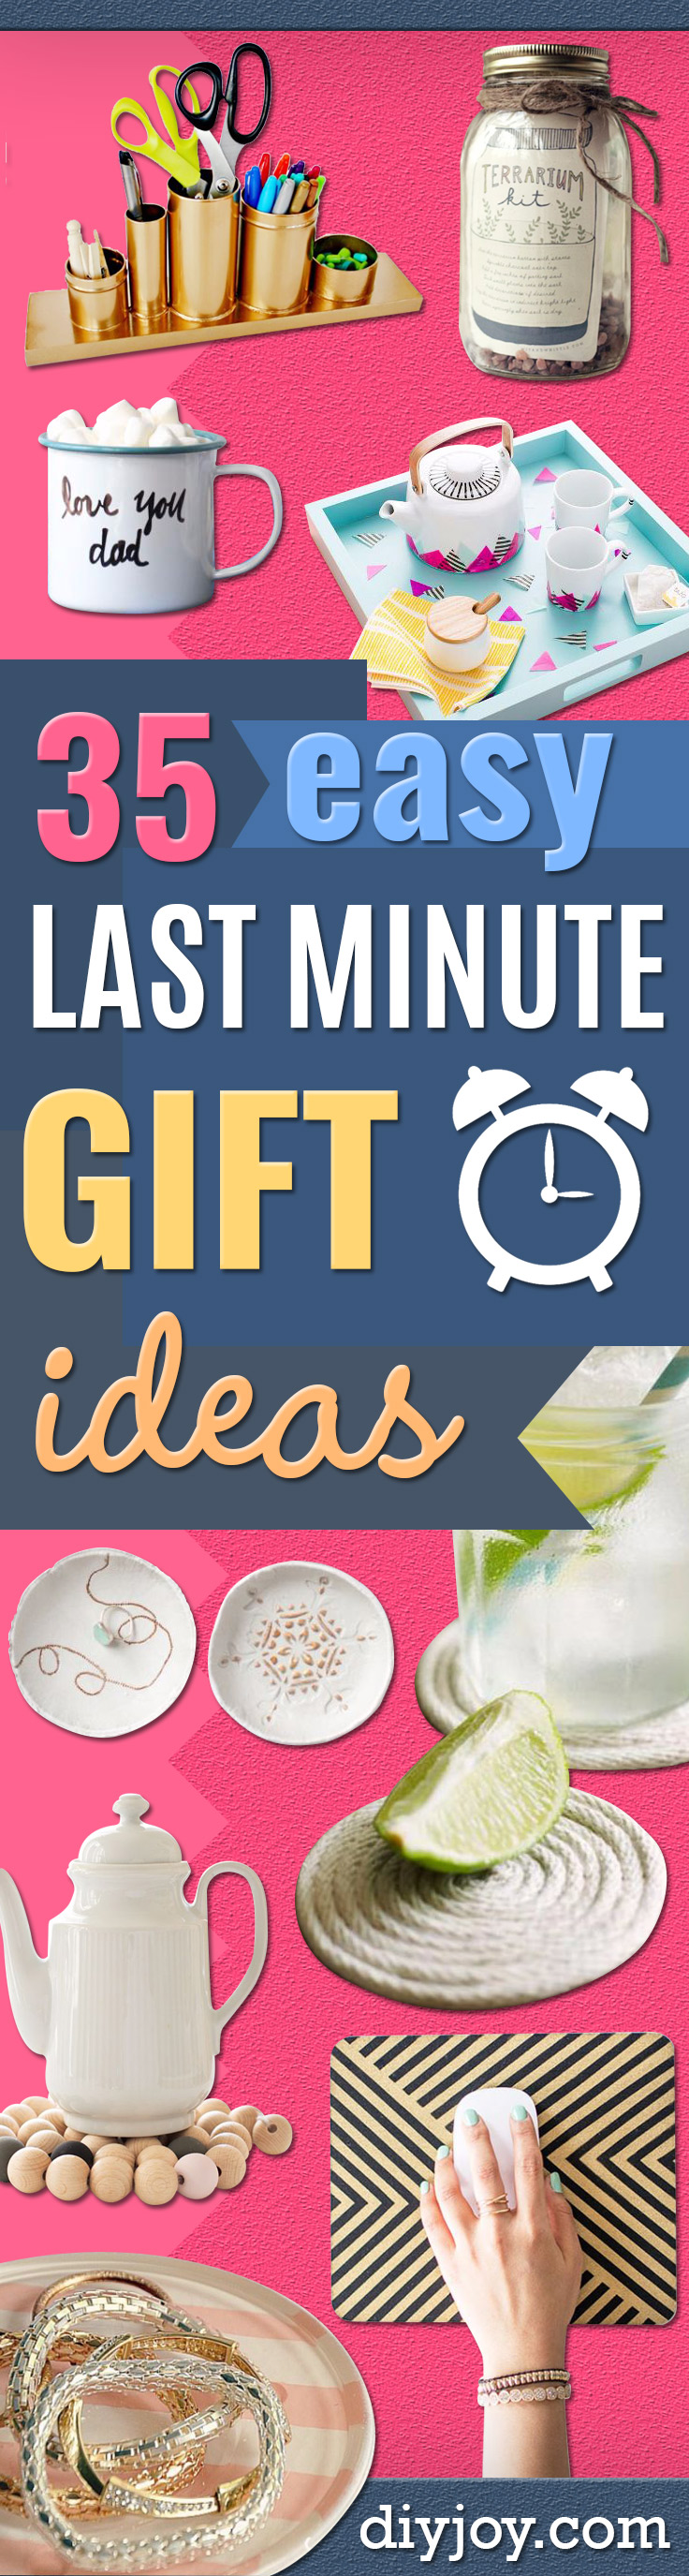 Last Minute Christmas Gifts - Quick DIY Gift Ideas and Easy Christmas Presents To Make for Mom, Dad, Family and Friends - Dollar Store Crafts and Cheap Homemade Gifts, Mason Jar Ideas for Gifts in A Jar, Cute and Creative Things To Make In A Hurry http://diyjoy.com/last-minute-gift-ideas-christmas